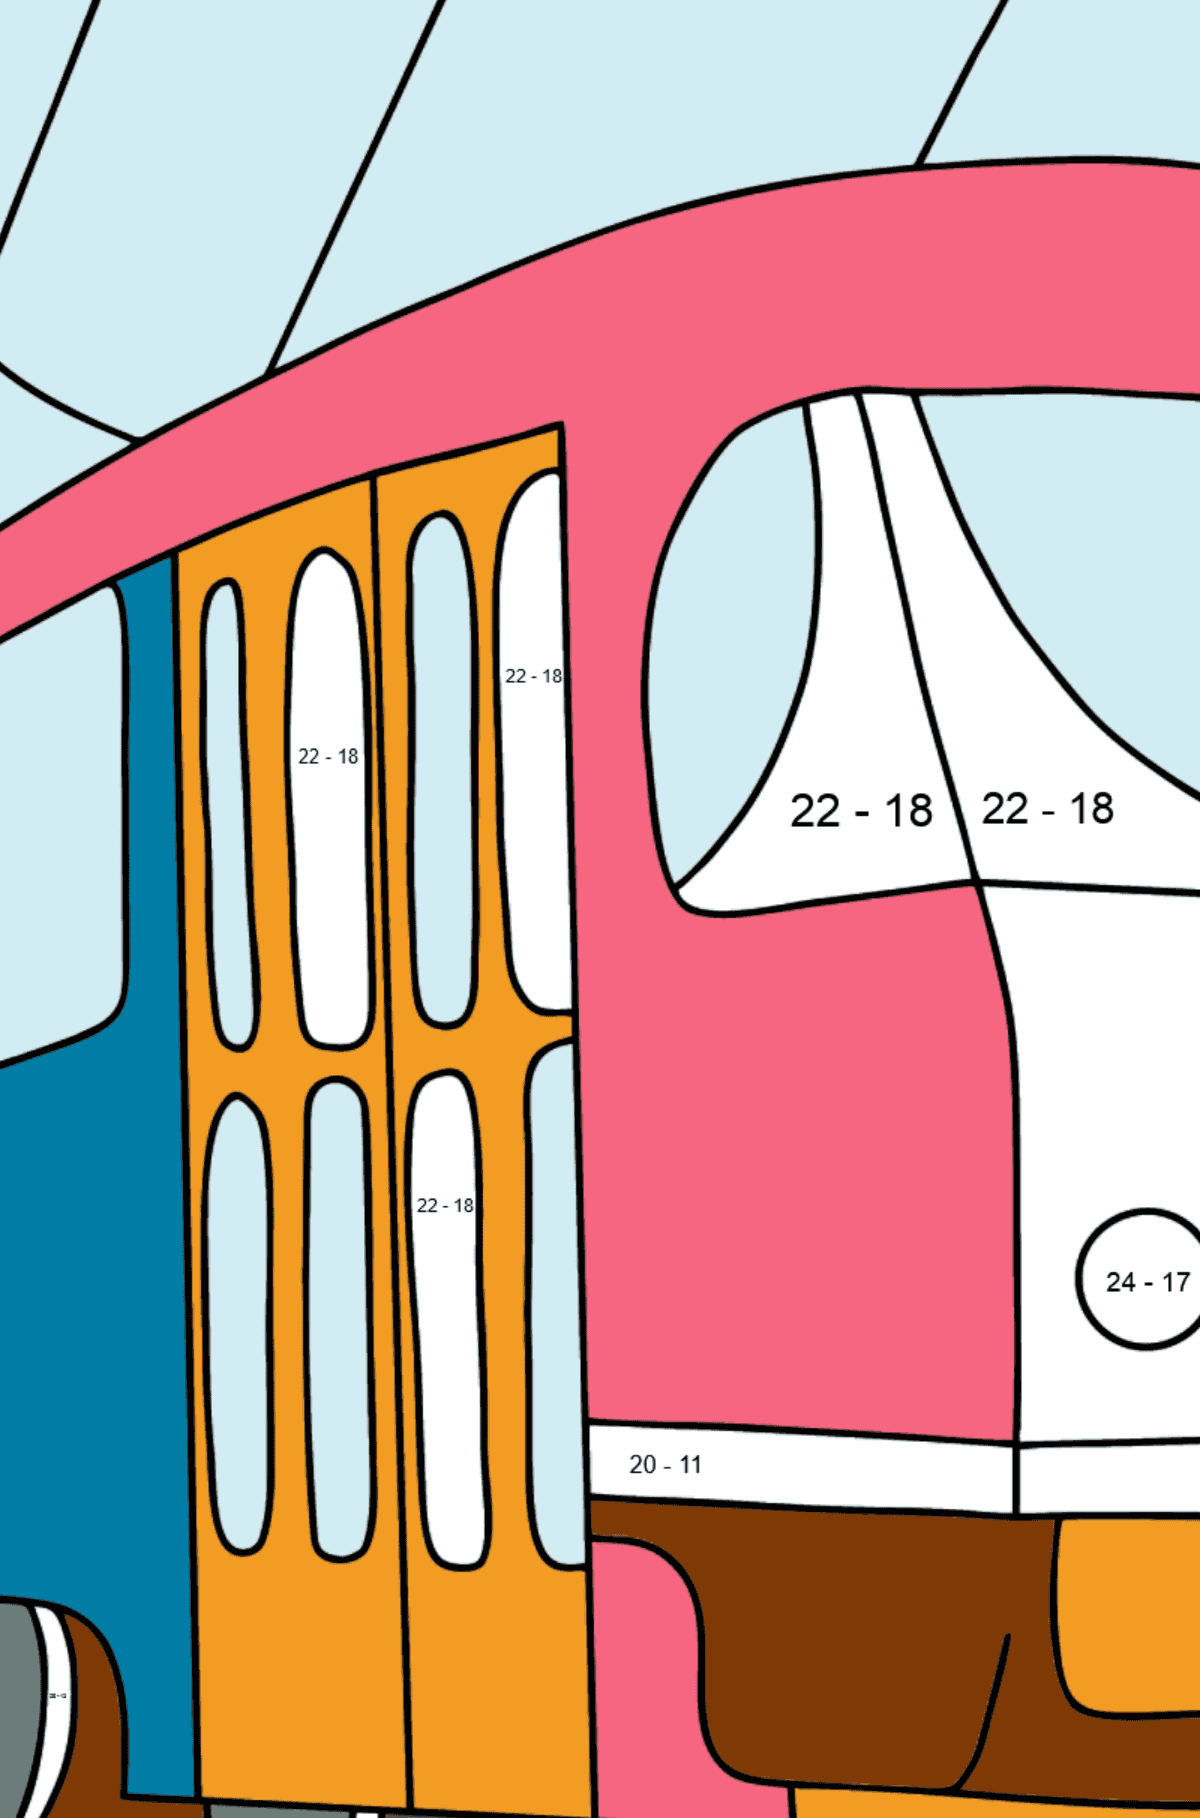 A Tram Coloring Page - Print fo free - Math Coloring - Subtraction for Kids